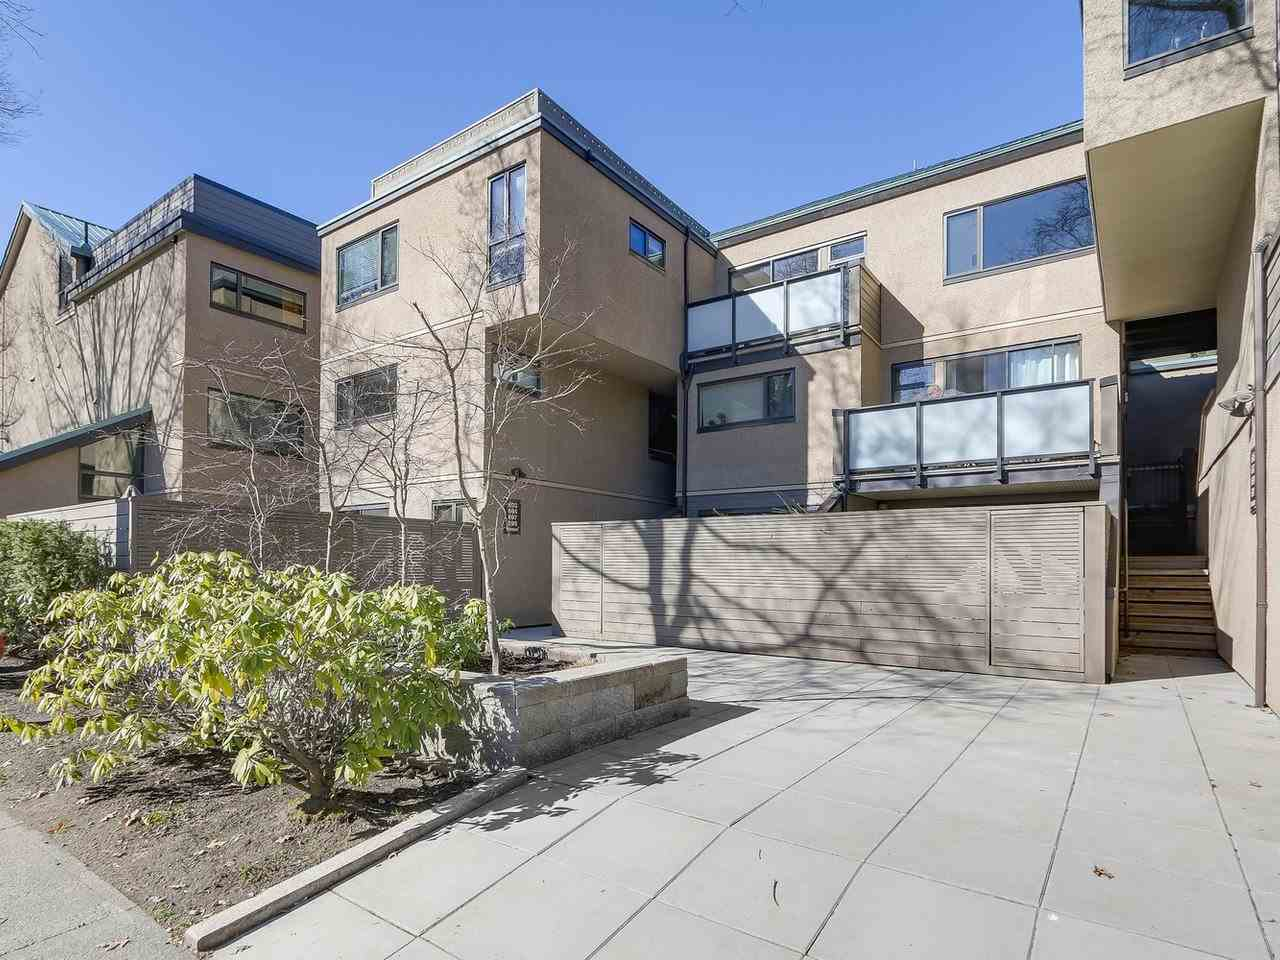 "Main Photo: 695 MOBERLY Road in Vancouver: False Creek Townhouse for sale in ""CREEK VILLAGE"" (Vancouver West)  : MLS®# R2277622"